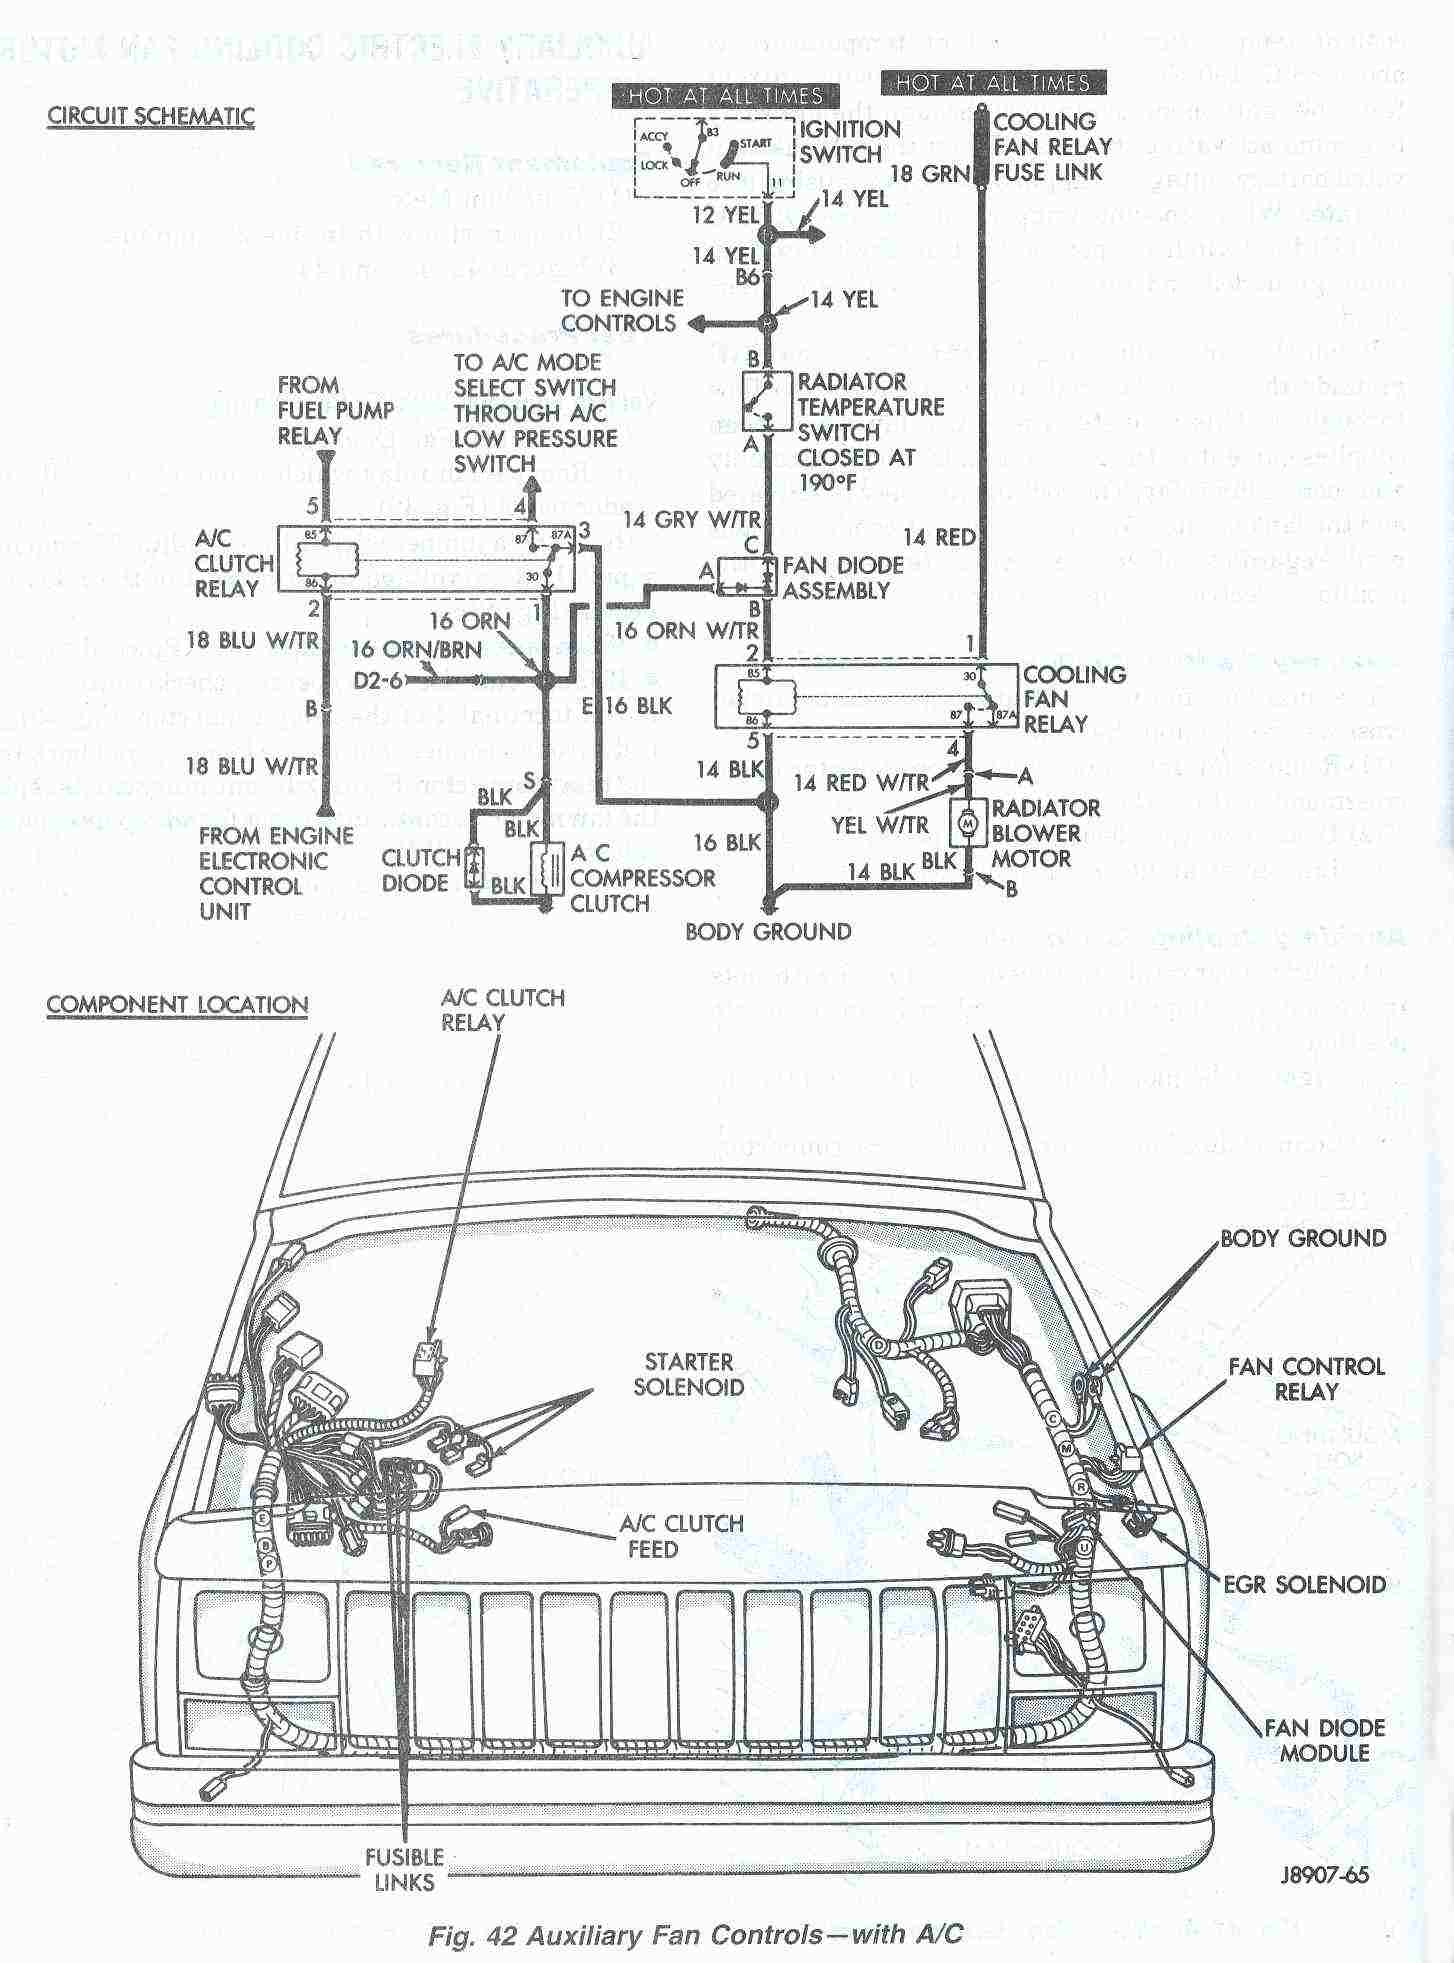 Auxiliary_Fan_Schematic_Fig_42 jeep cherokee cooling system electric cooling fan 97 jeep grand cherokee wiring diagram at soozxer.org